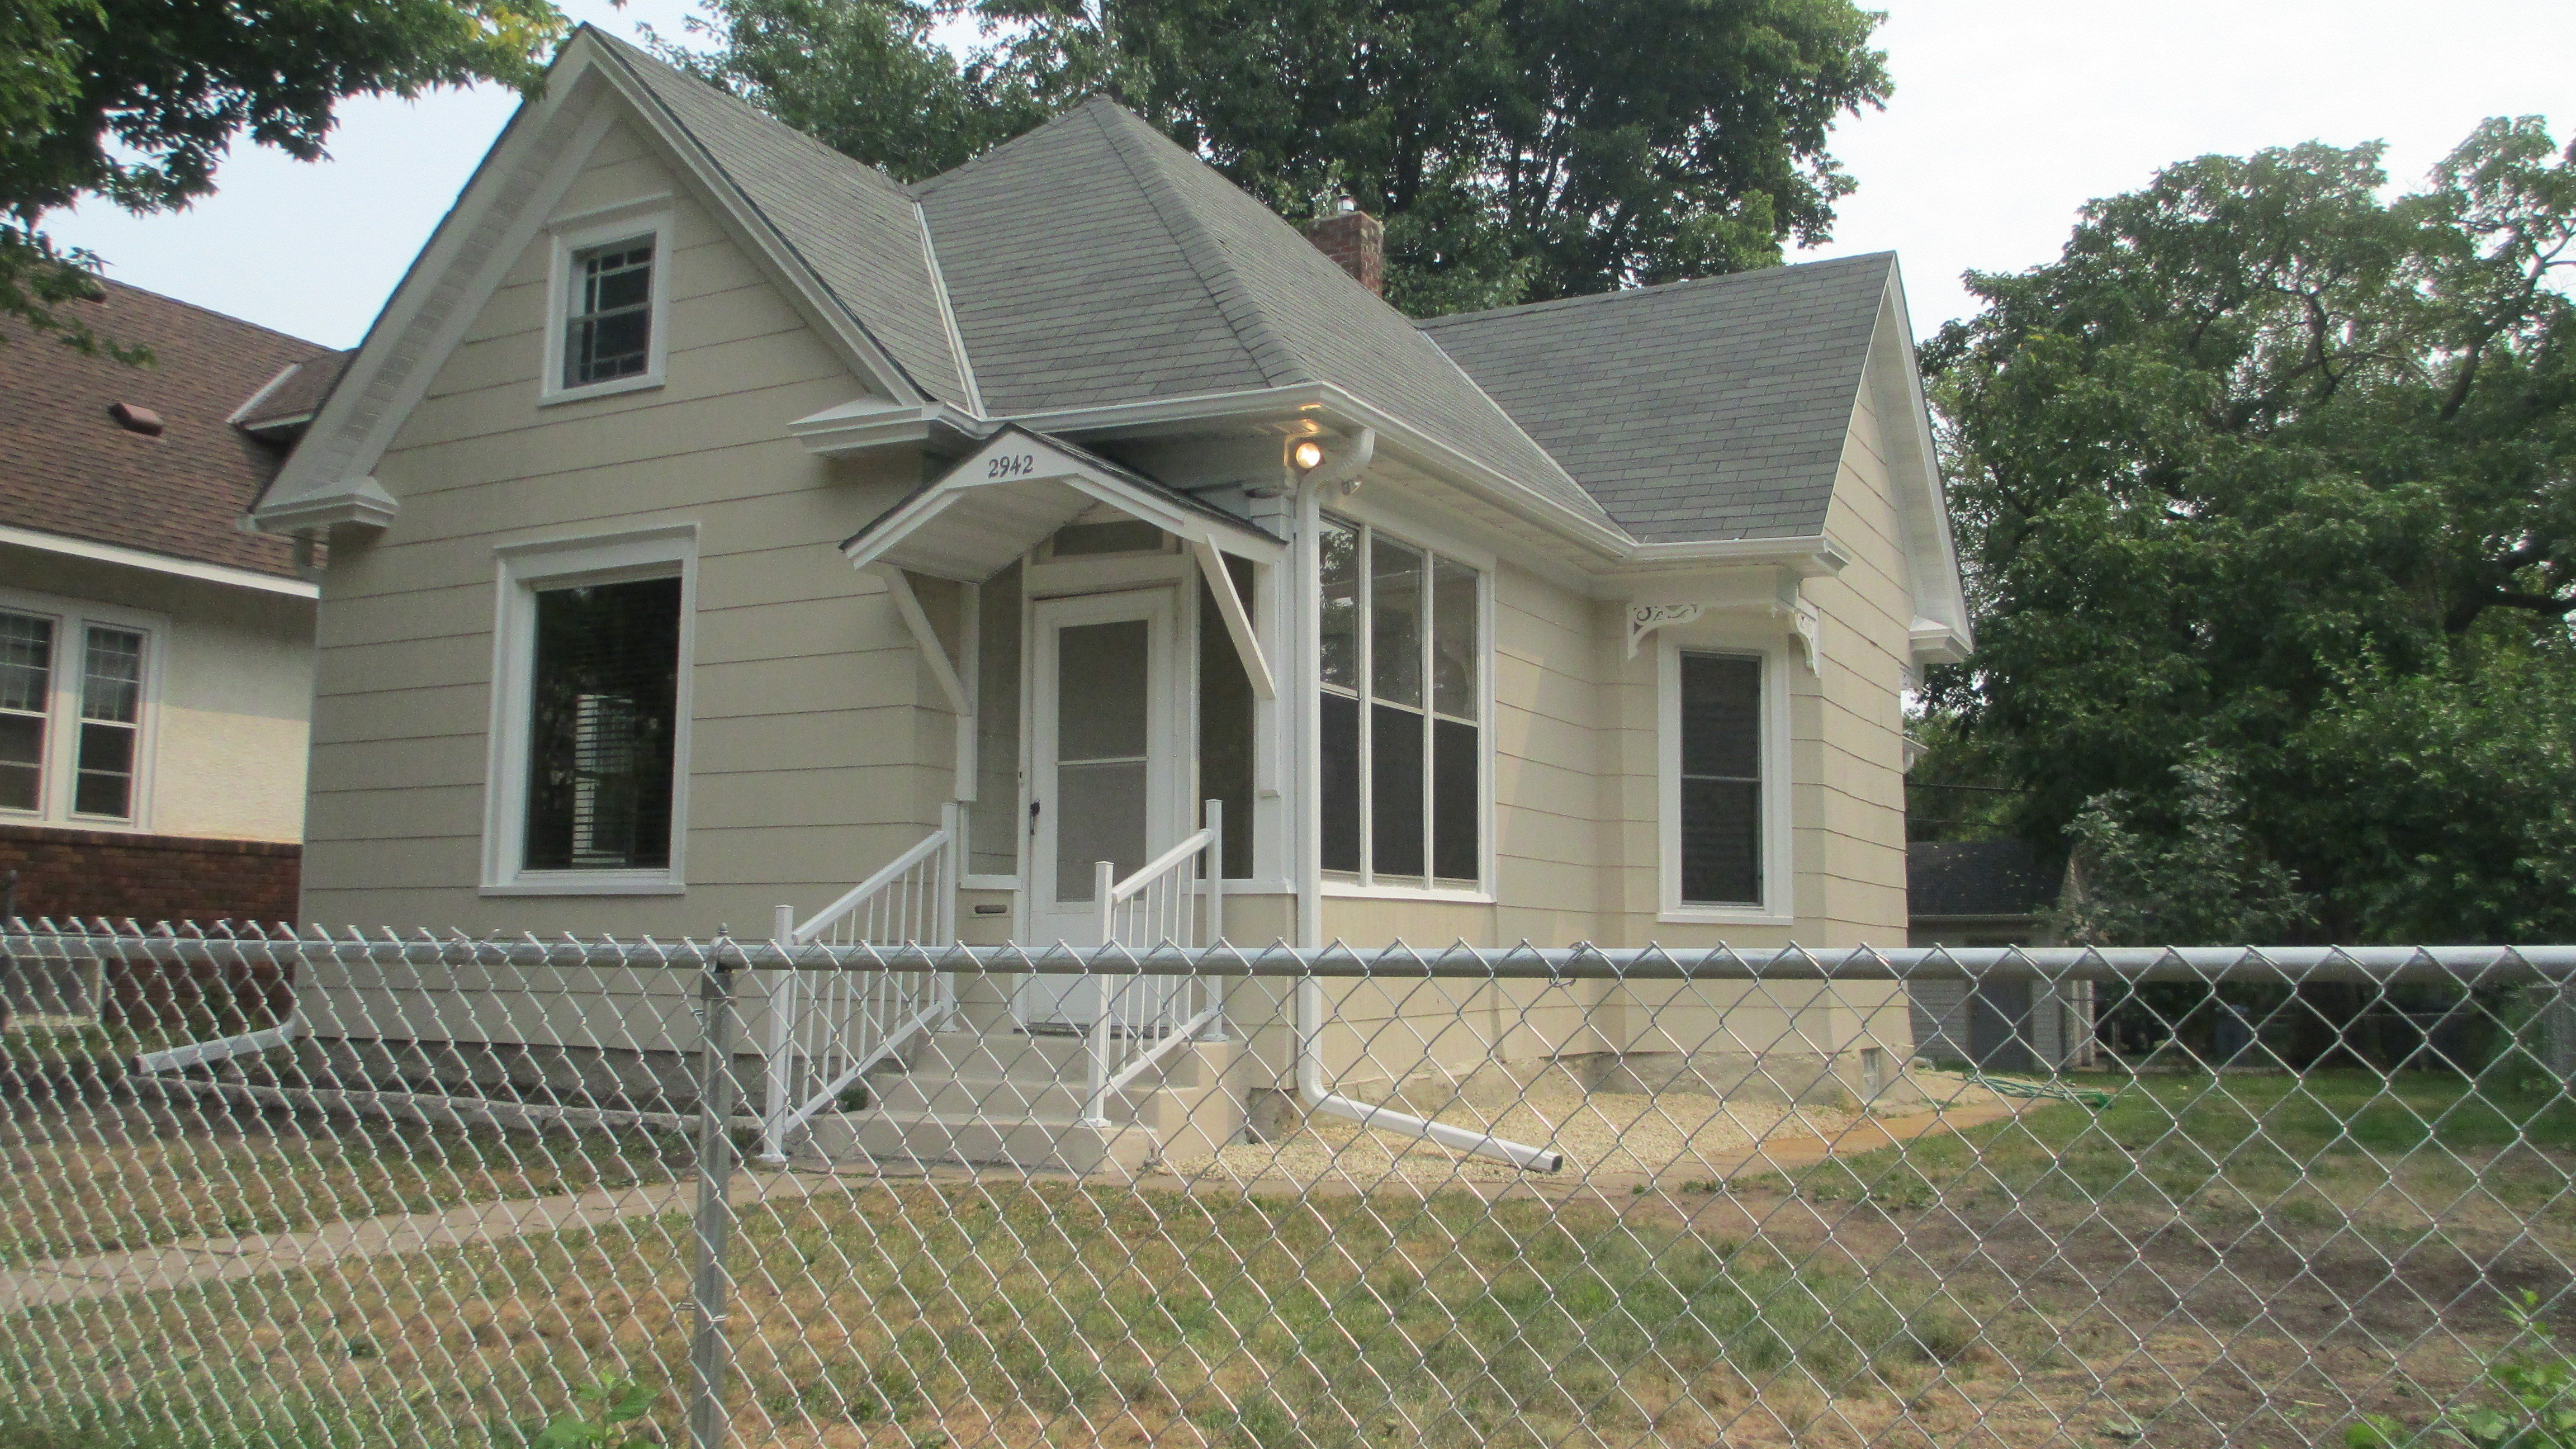 Best 2942 Bryant Ave N Minneapolis Mn 55411 3 Bedroom With Pictures